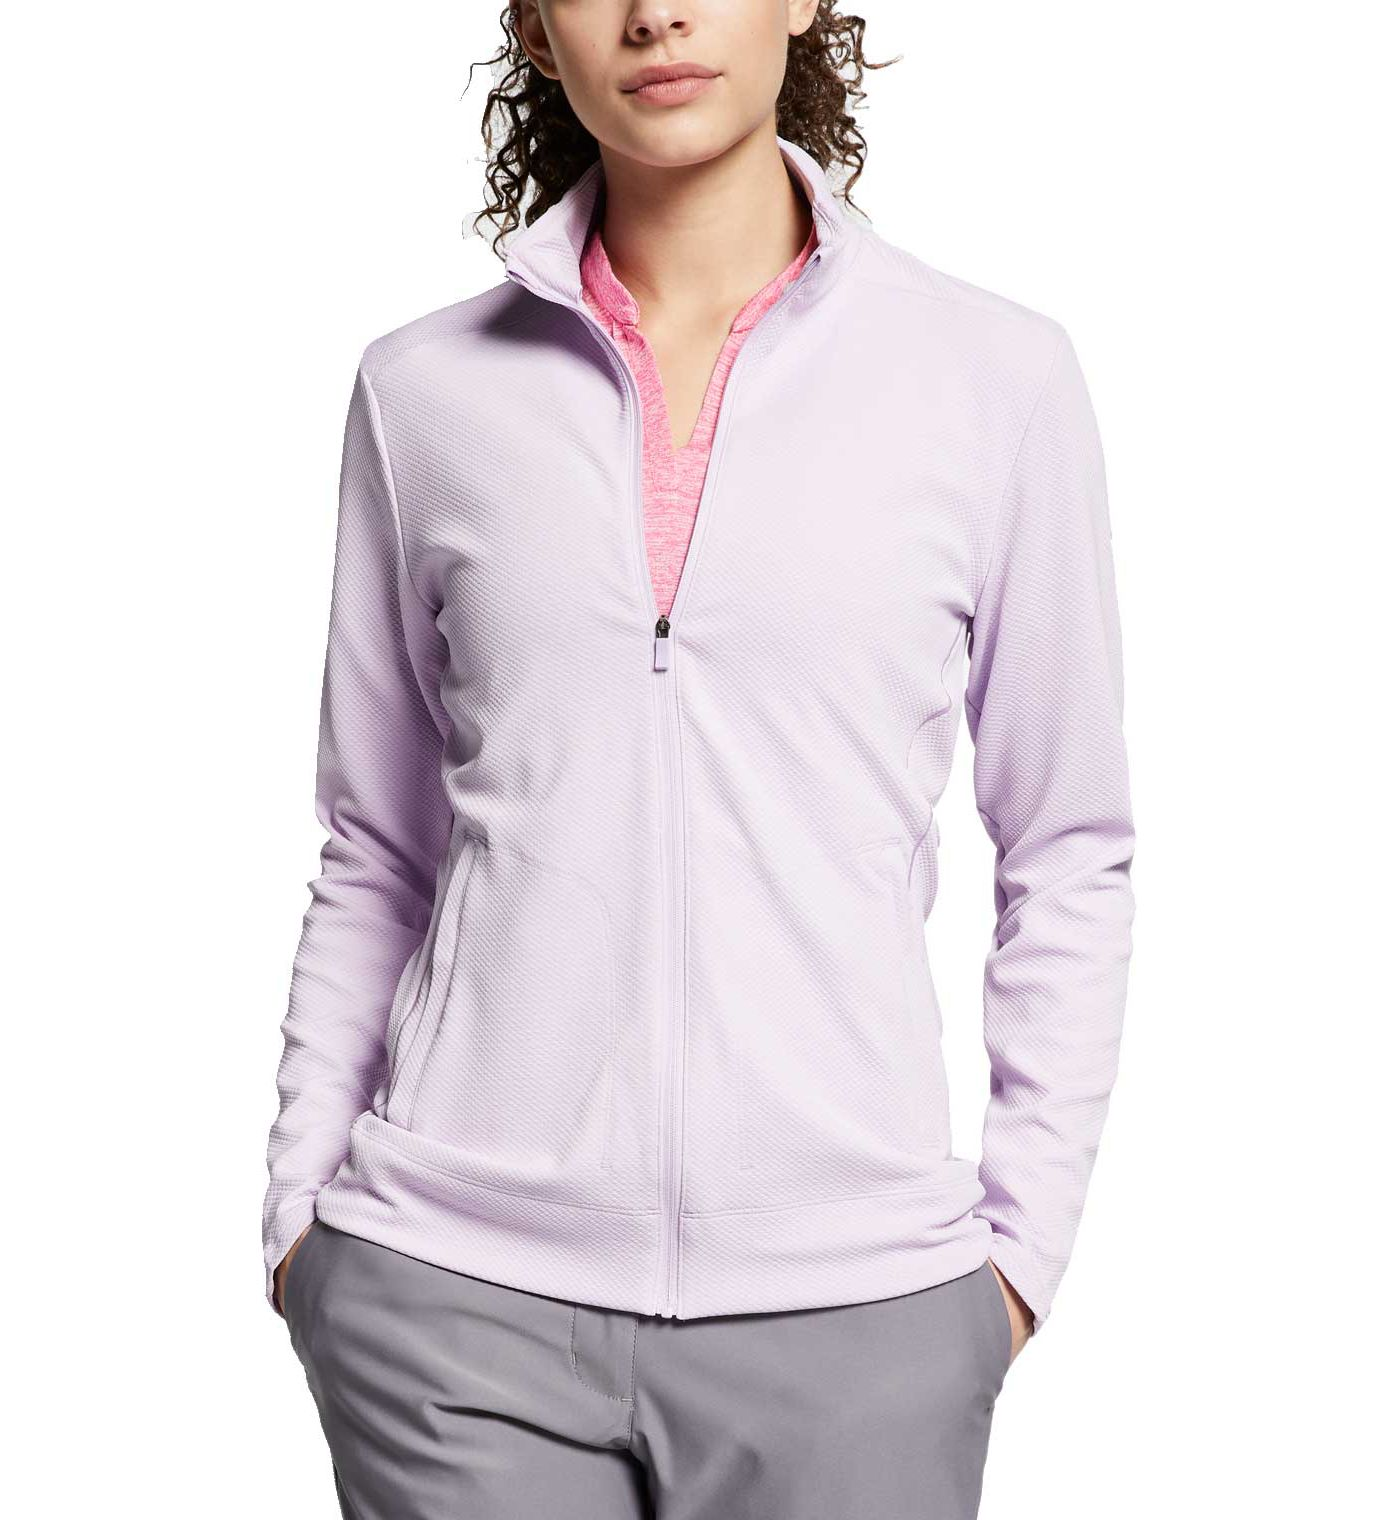 Nike Women's Dri-FIT Full-Zip Golf Jacket